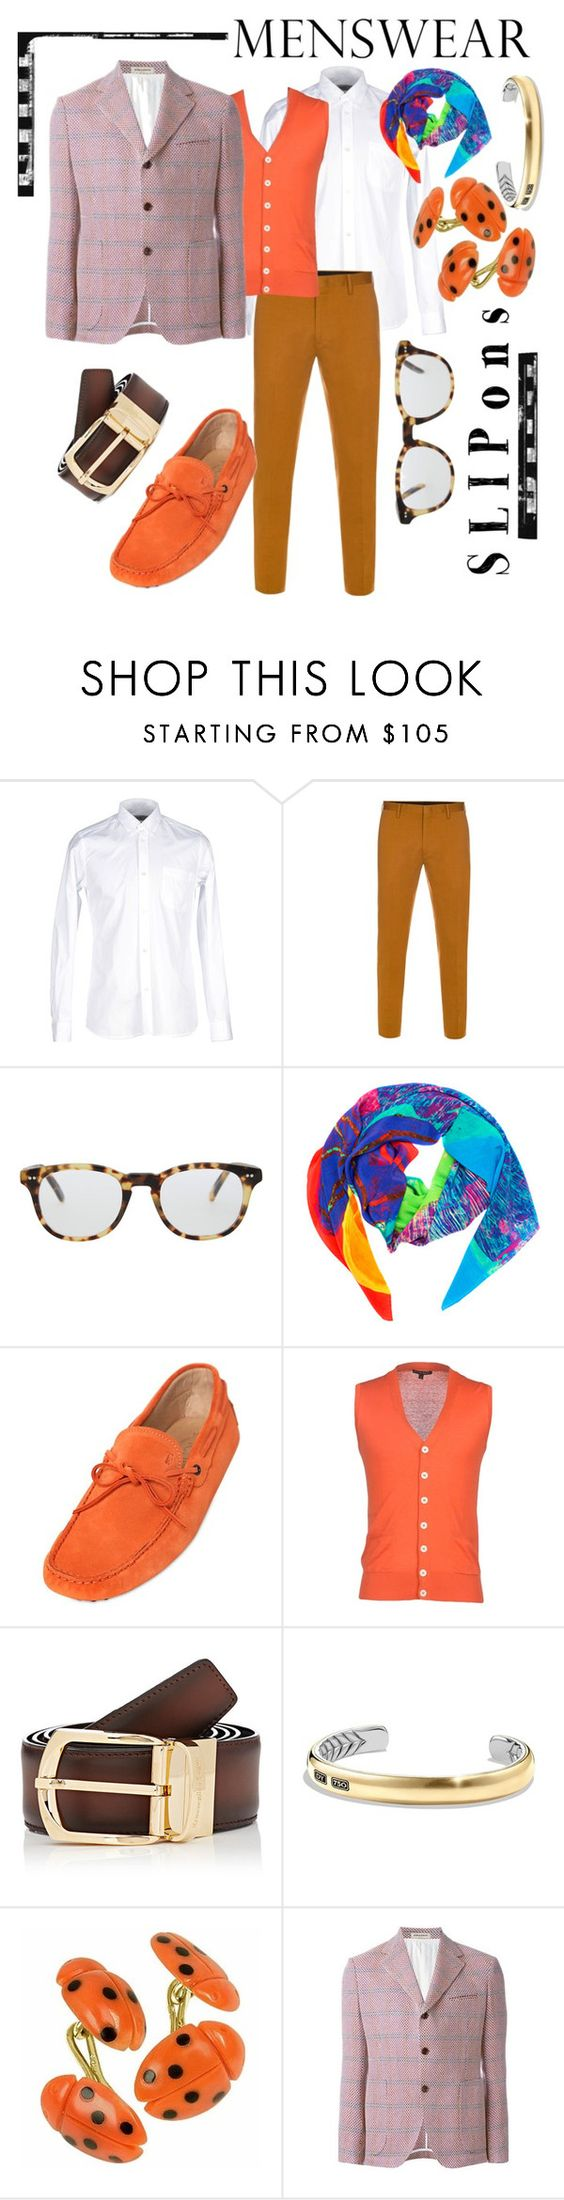 """Colorful slip ons"" by capricat ❤ liked on Polyvore featuring M.GRIFONI DENIM, Paul Smith, Cutler and Gross, Tod's, Brian Dales, Ermenegildo Zegna, David Yurman, Forzieri Exclusives, men's fashion and menswear"